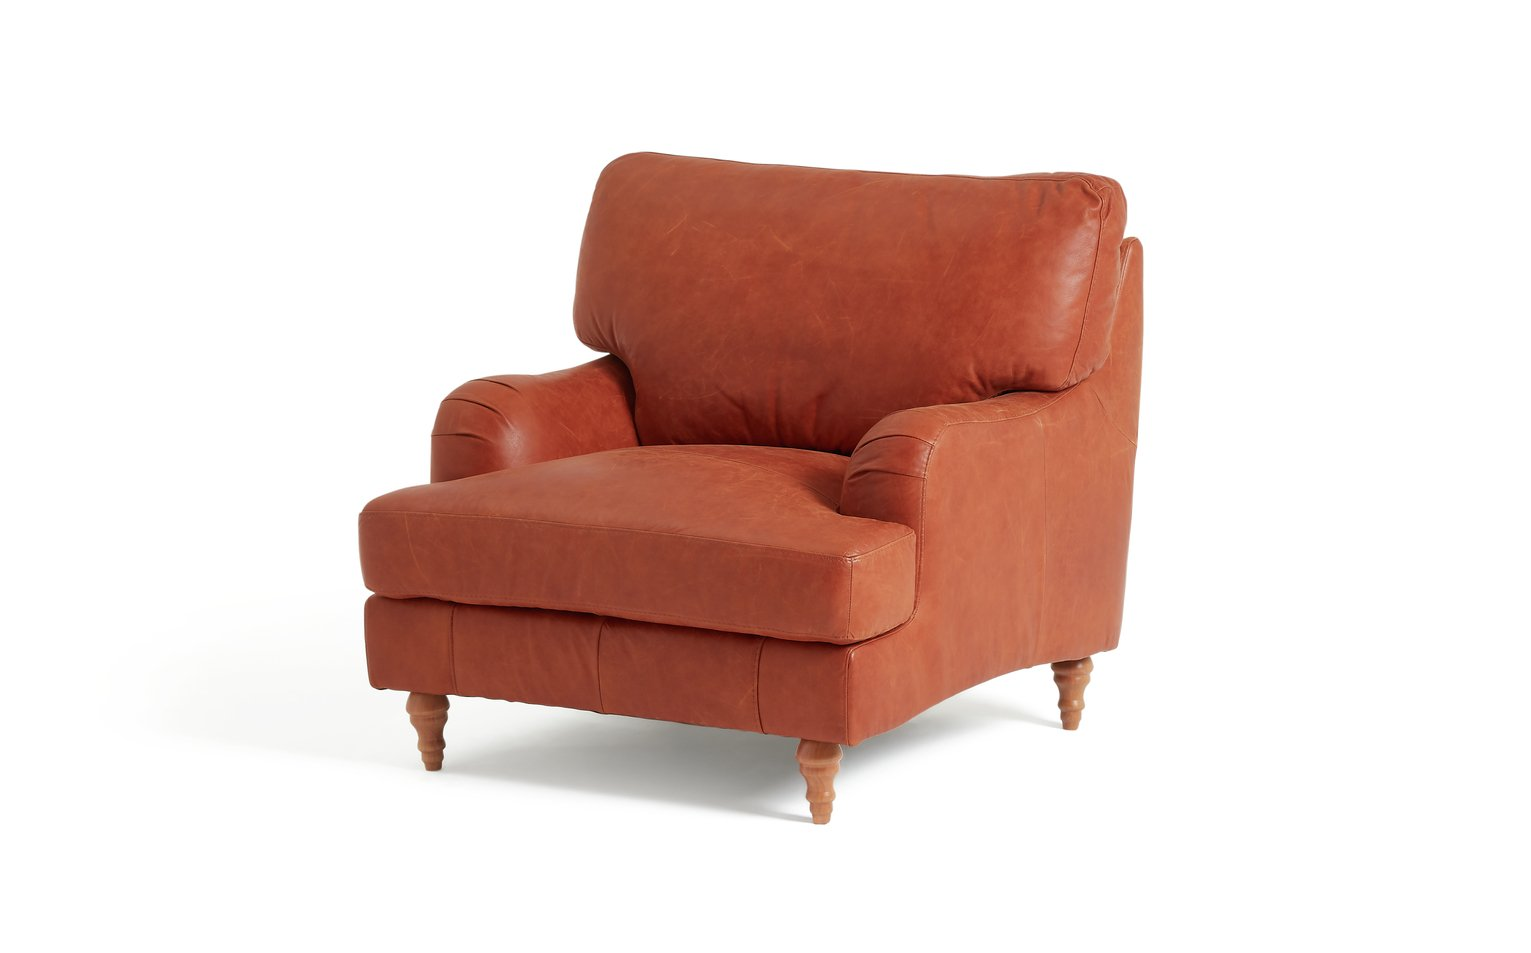 Argos Home Livingston Leather Armchair - Tan